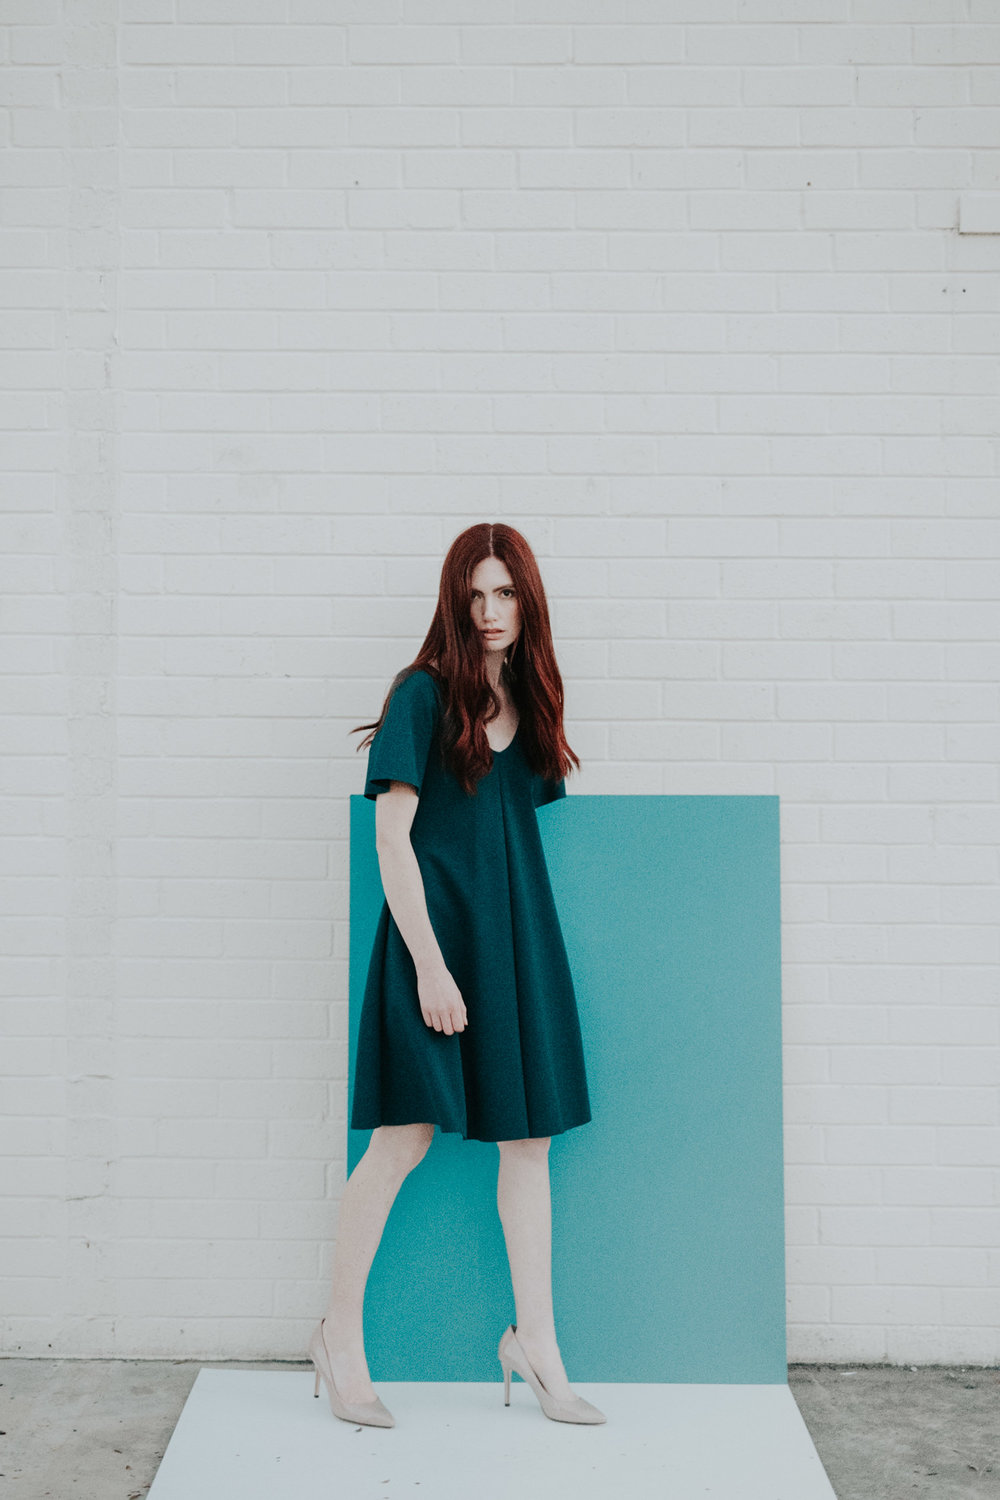 Tonal editorial / blue and green color fashion story featuring Canberra Designs / photography by Jenny Wu Straight No Chaser Canberra at Kingston Bus Depot and Fitters Workshop